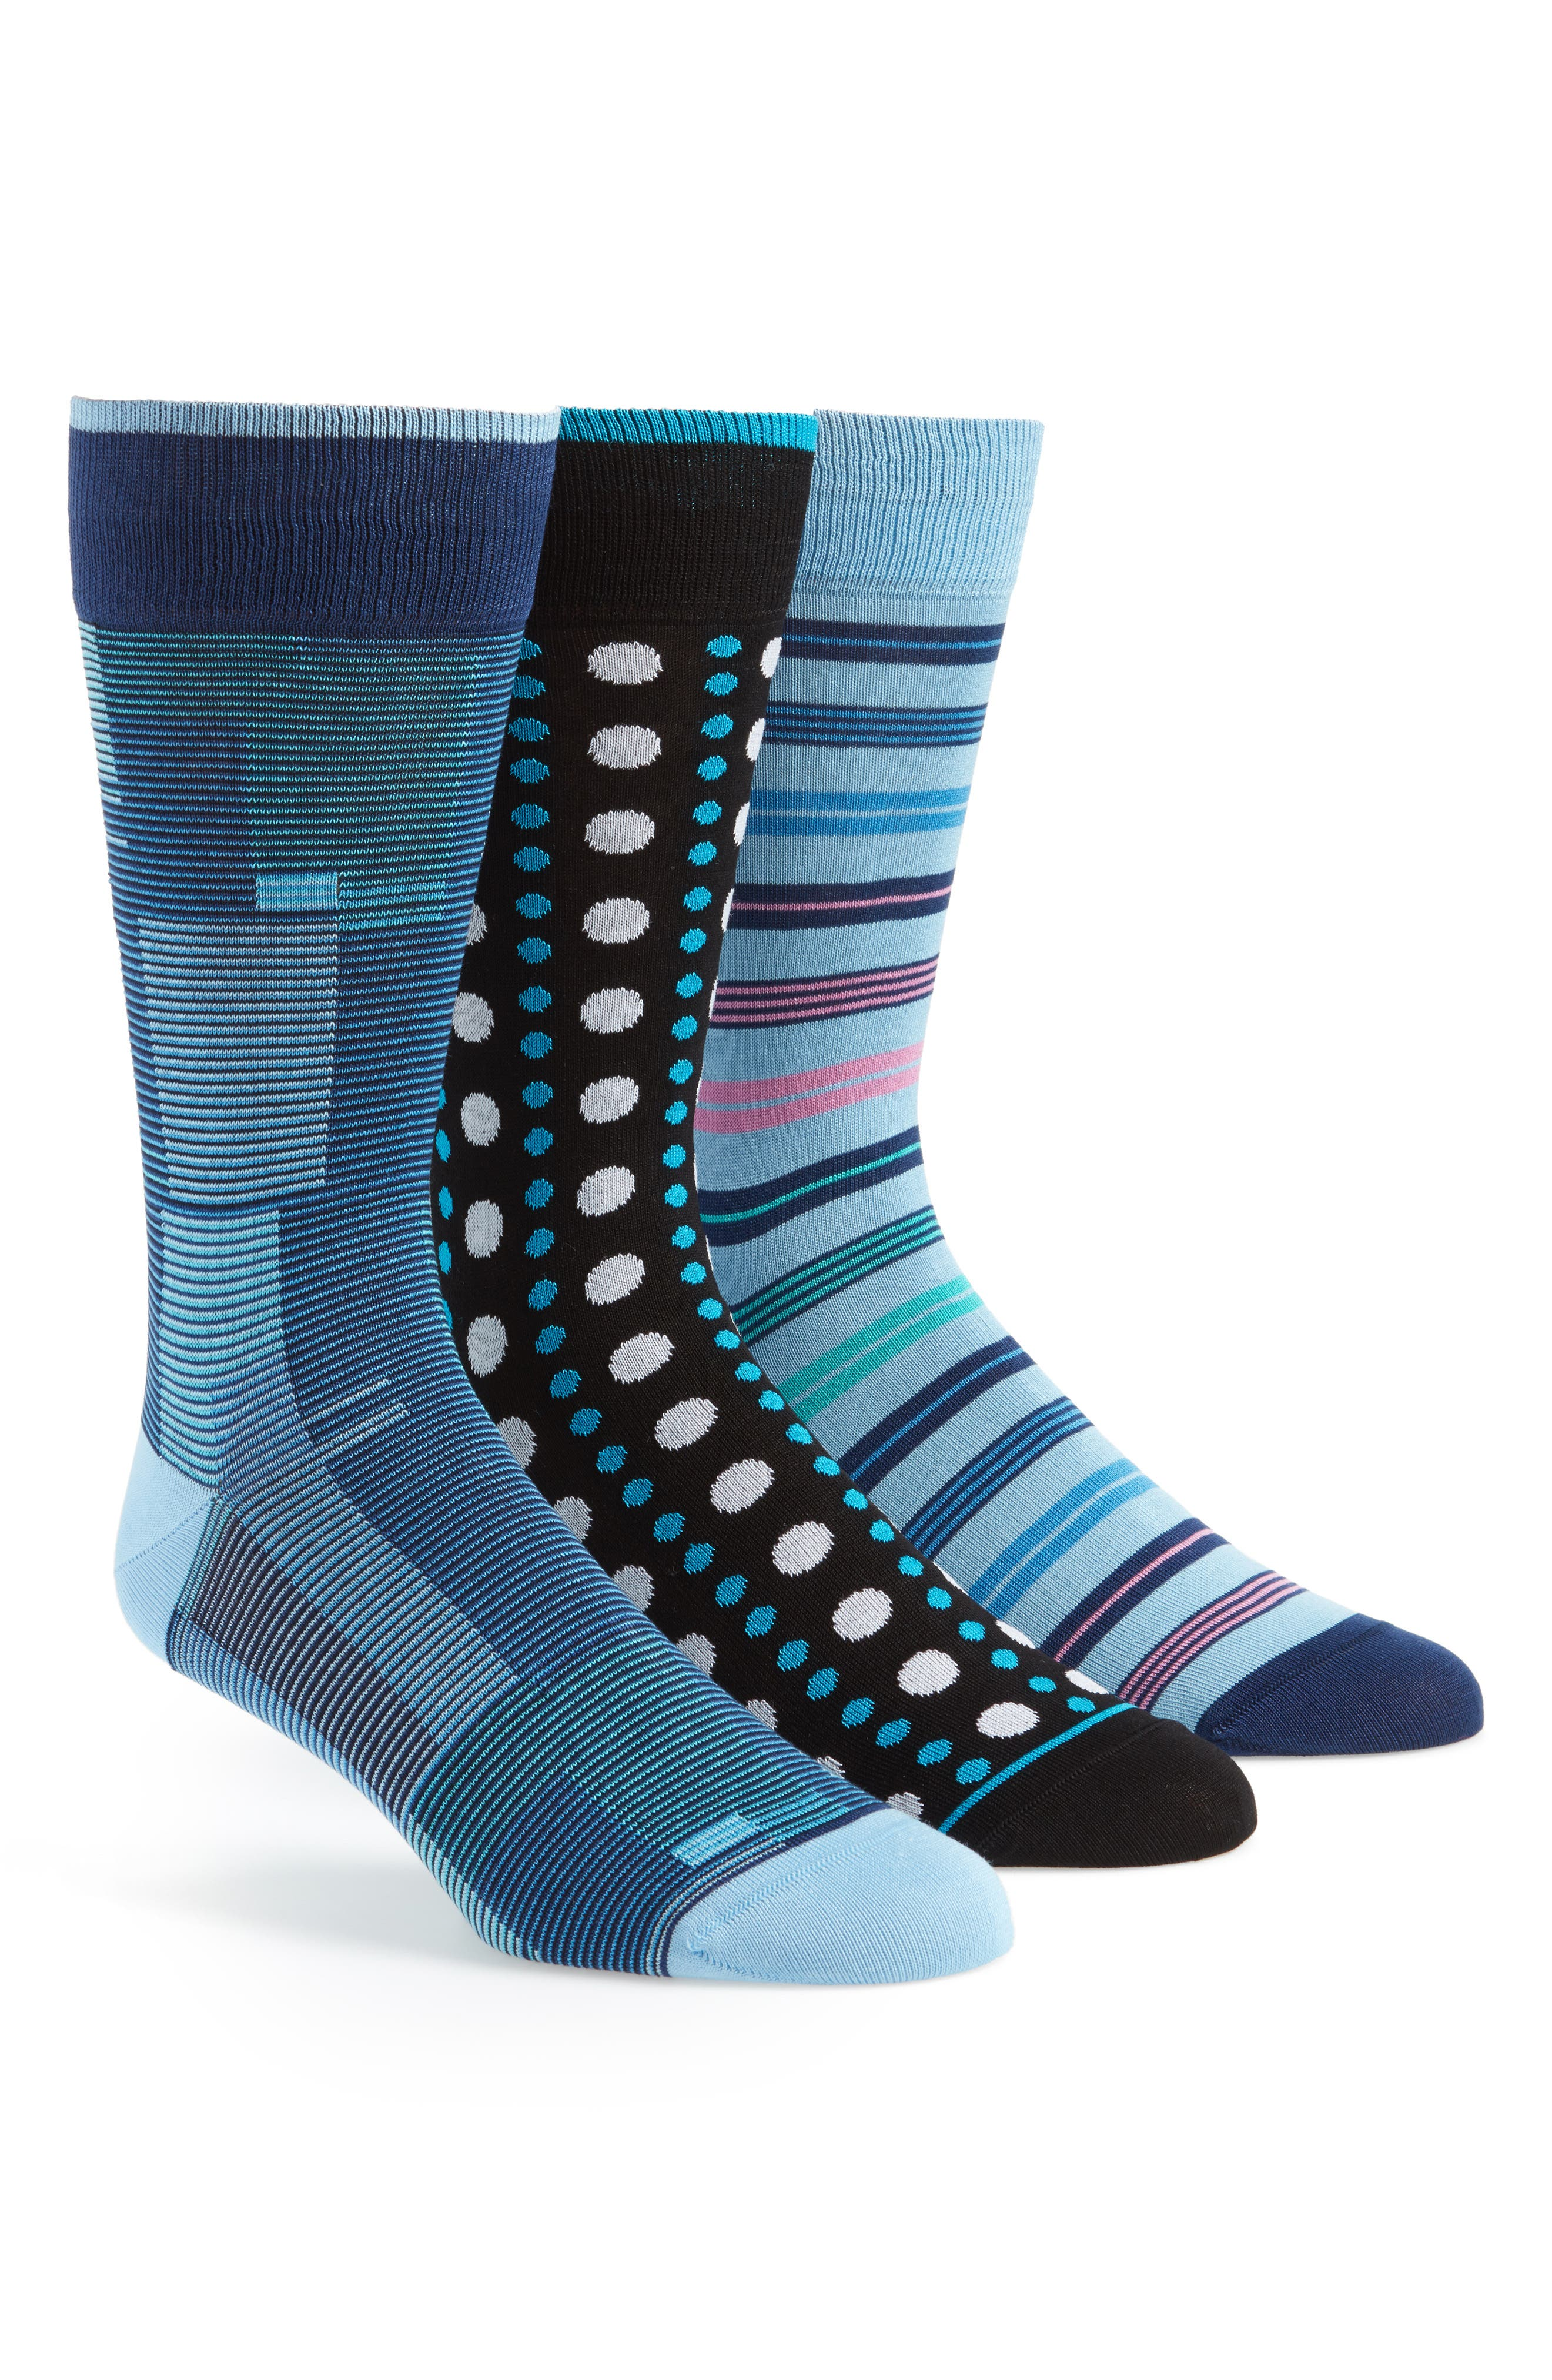 3-Pack Assorted Mercerized Cotton Blend Sock Gift Set,                         Main,                         color,